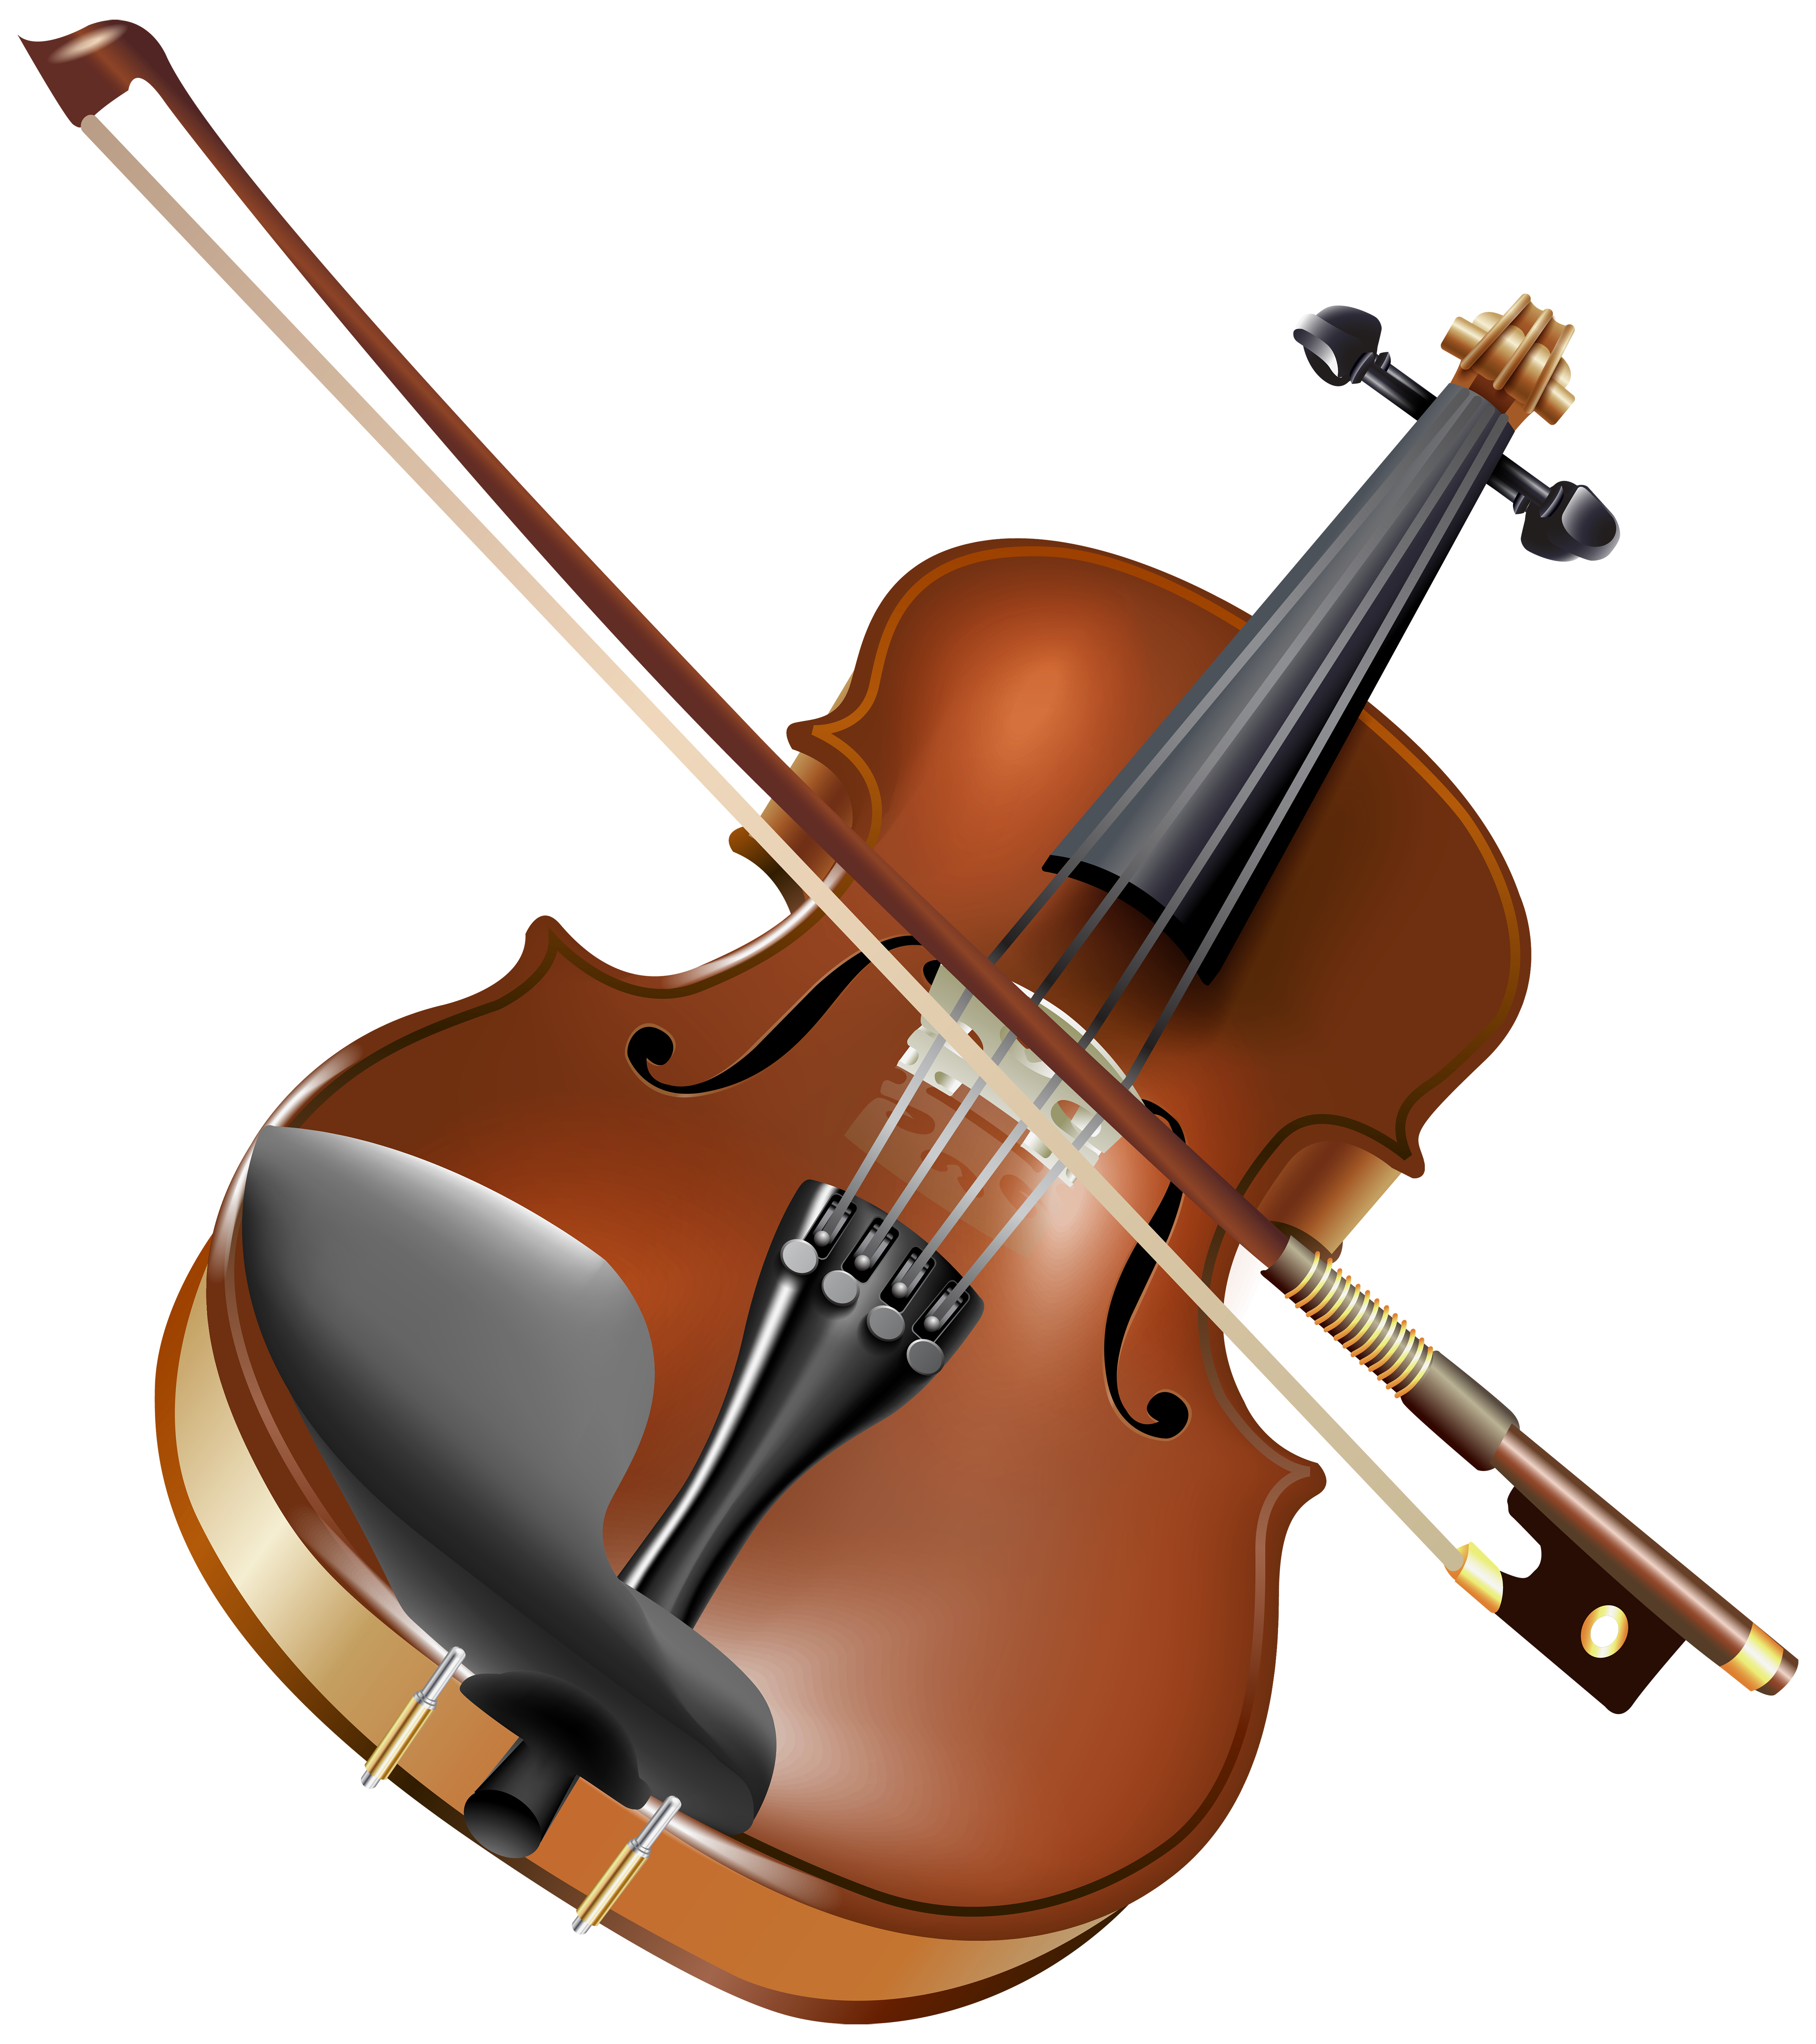 Violin clipart png graphic black and white Violin PNG Clipart - Best WEB Clipart graphic black and white